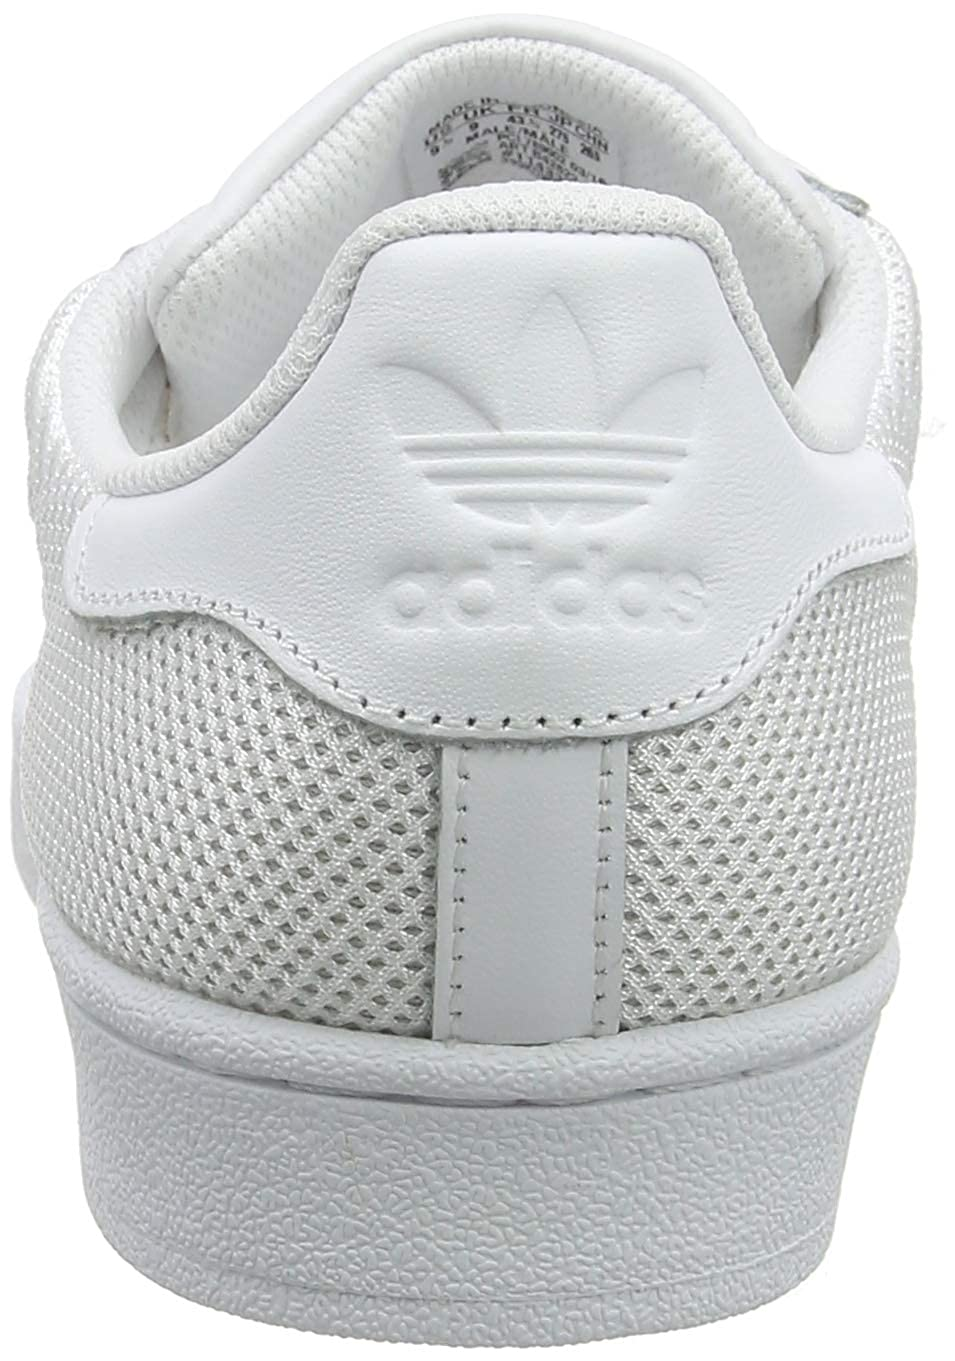 adidas Unisex Adult Superstar Low-Top Sneakers